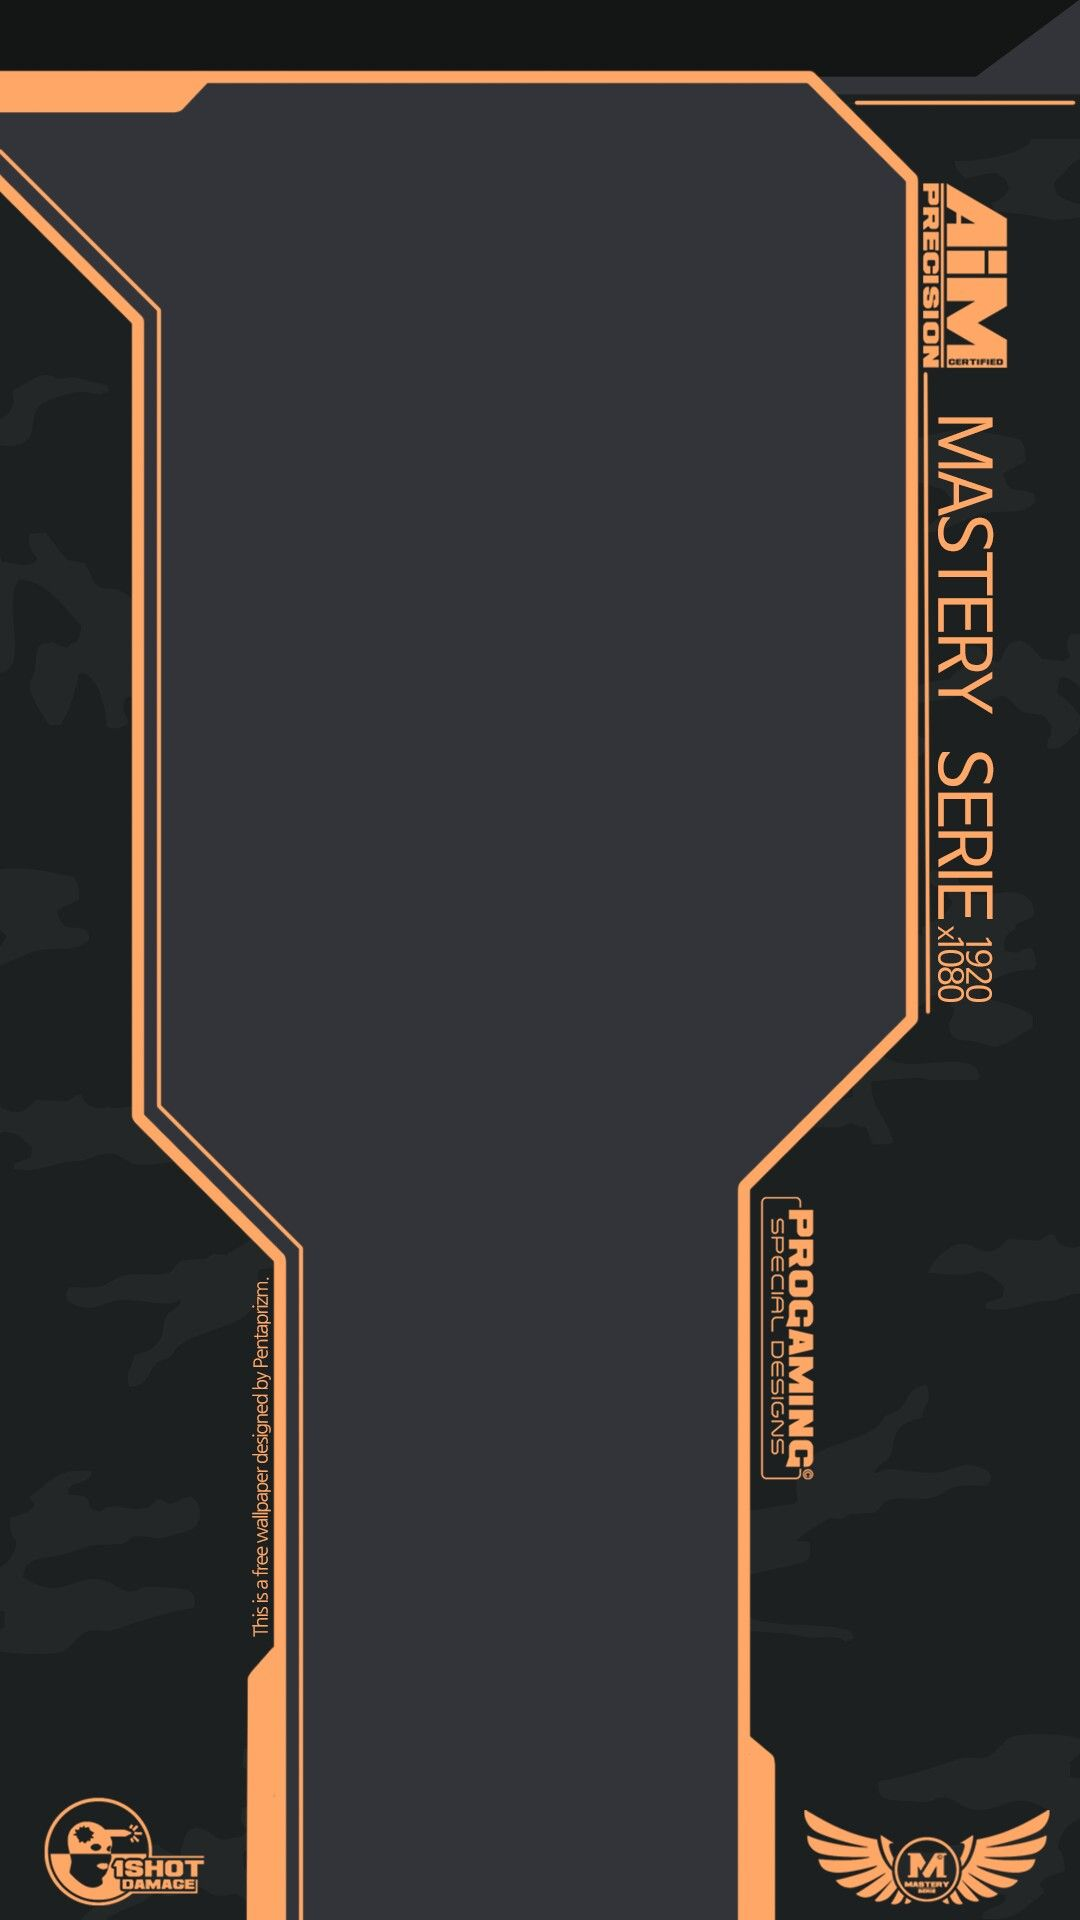 CS:GO \'Elite Build\' Smartphone Wallpaper #photoshop #design #csgo ...